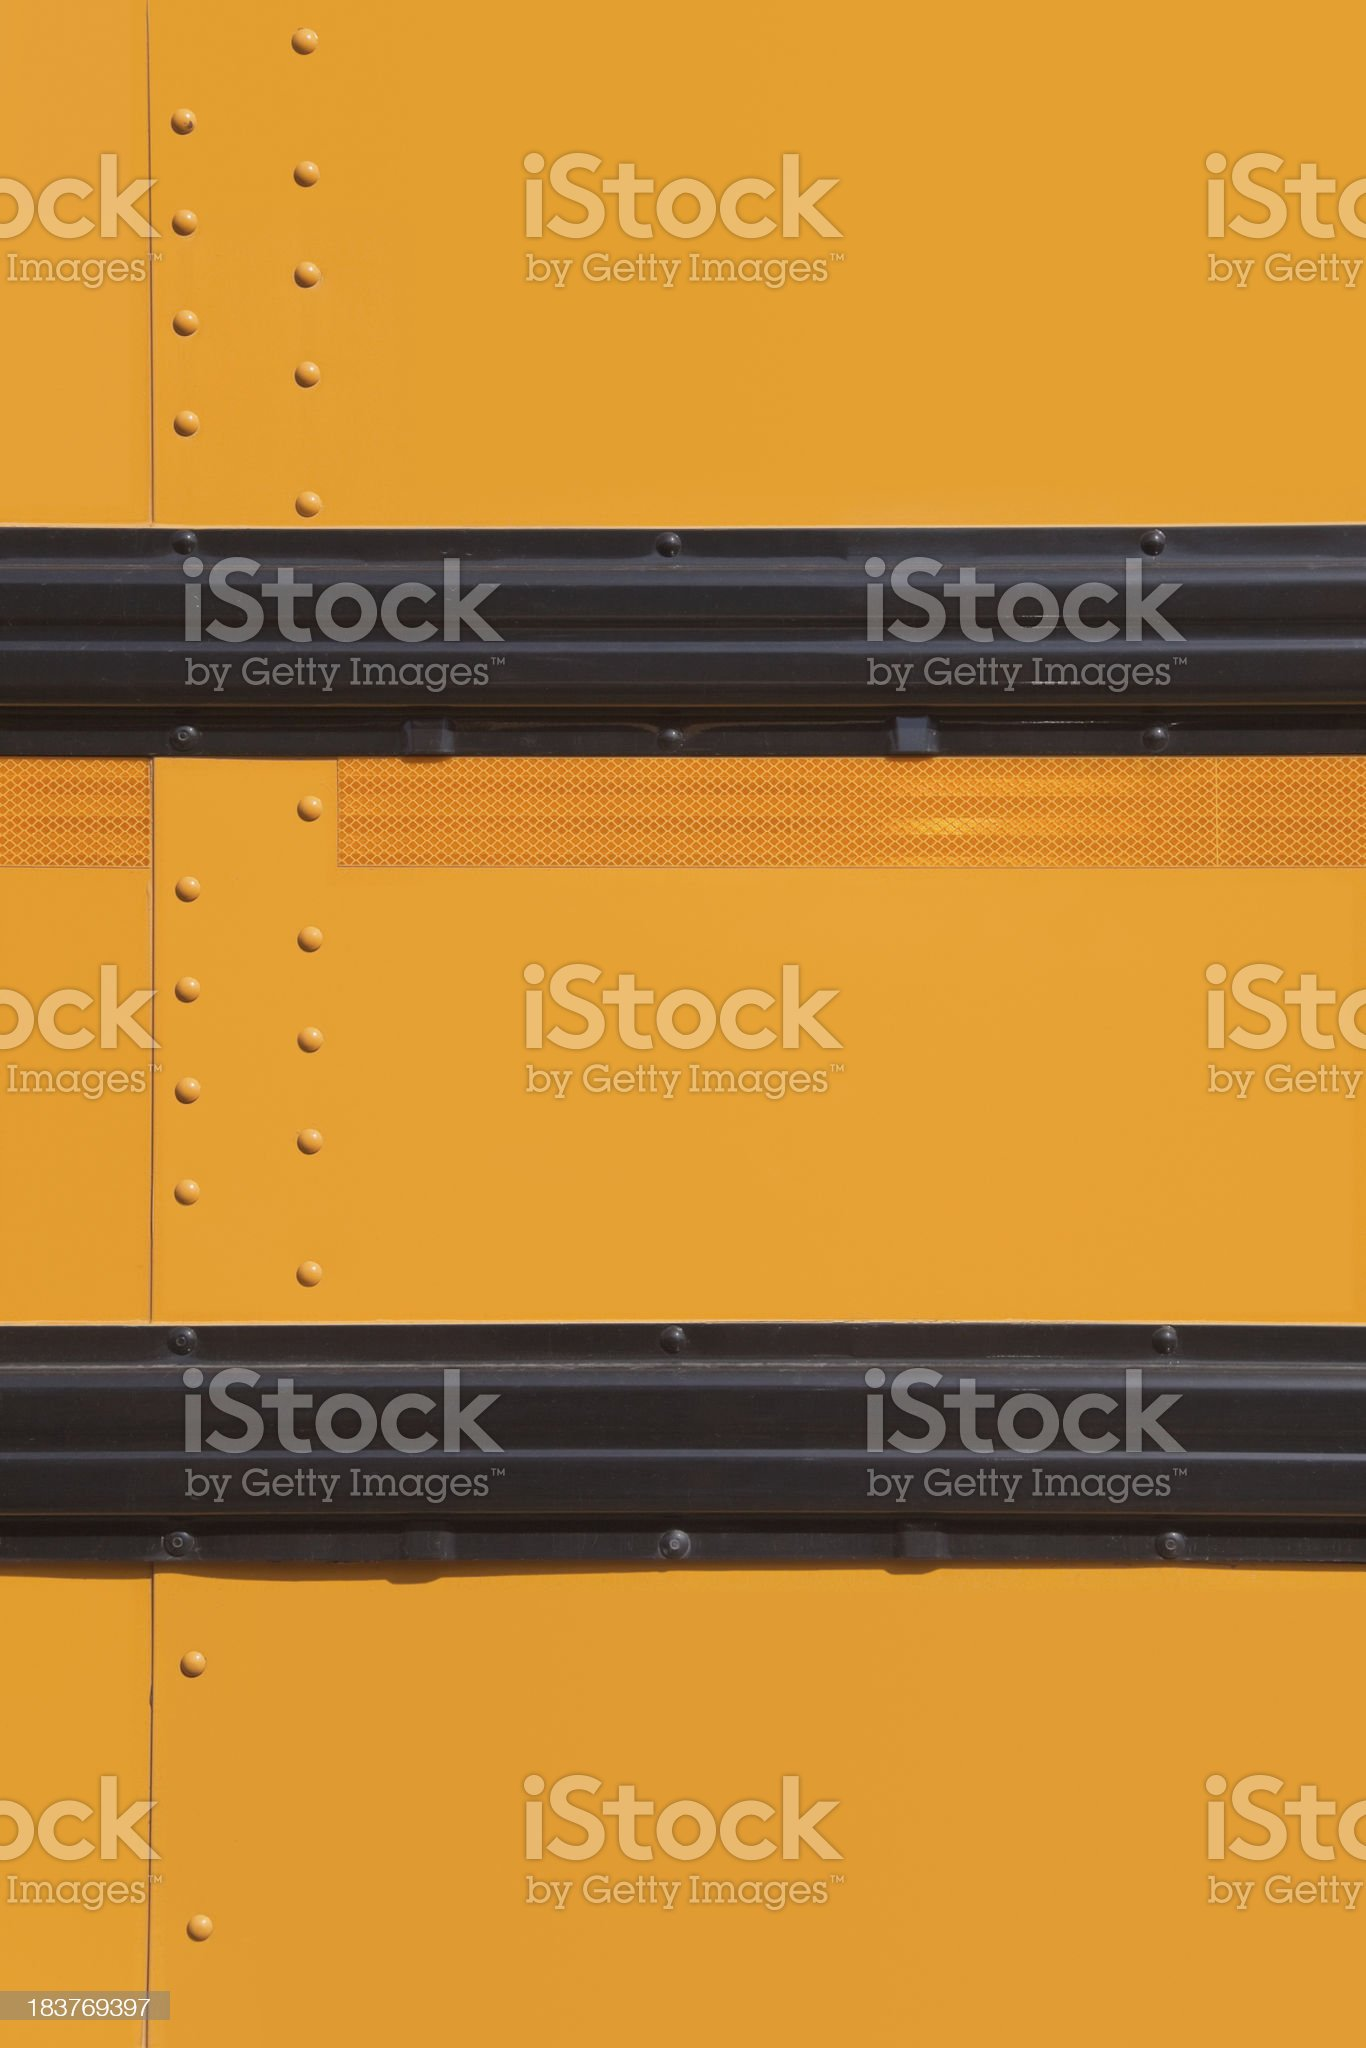 Bus Background royalty-free stock photo